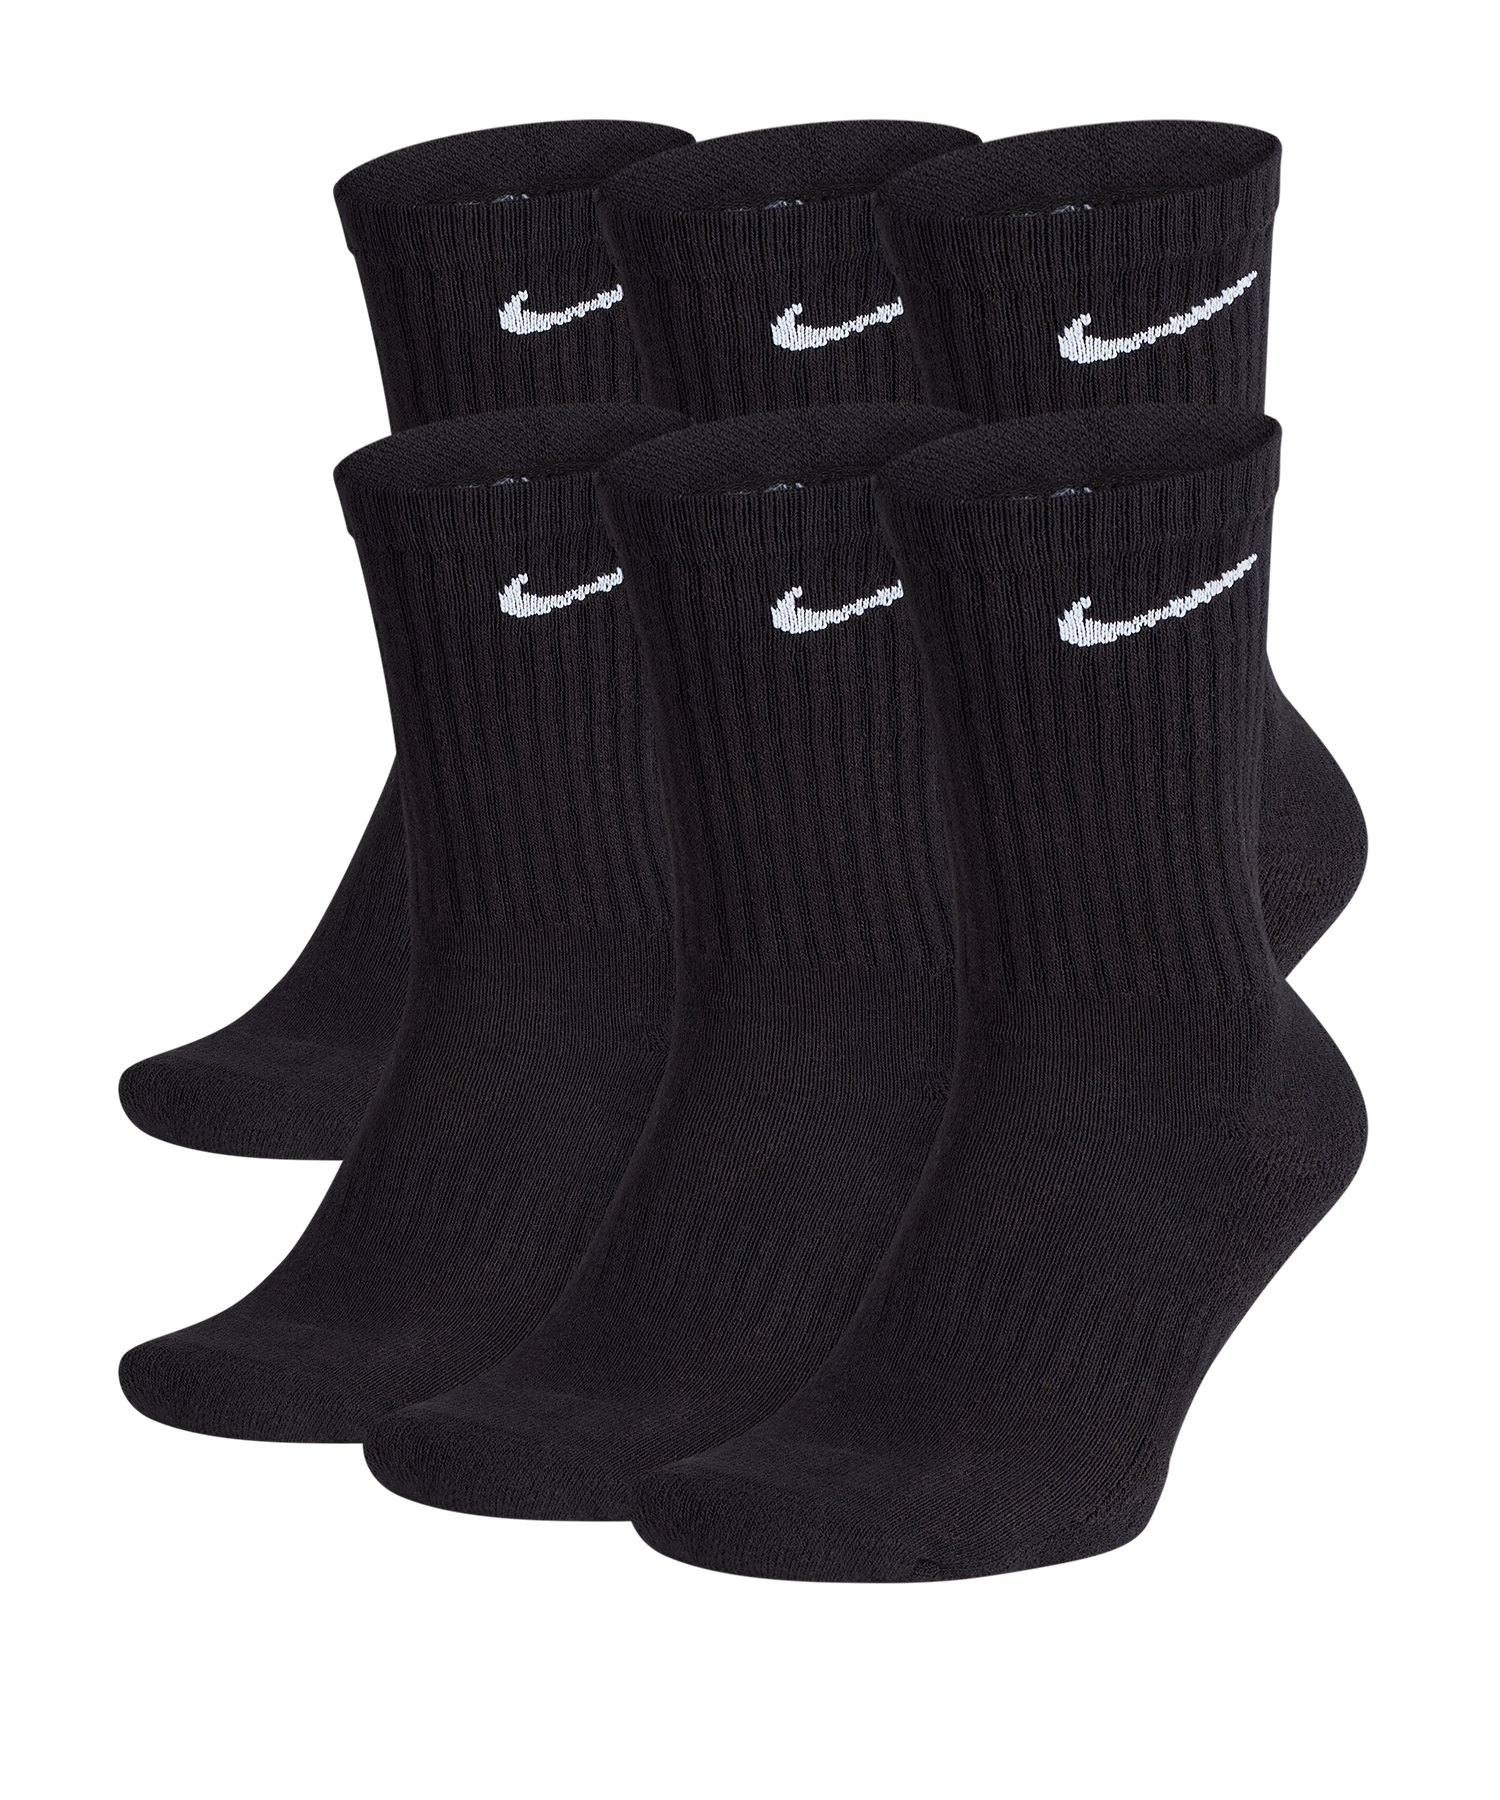 Nike Everyday Cushion Crew 6er Pack Socken F010 - schwarz